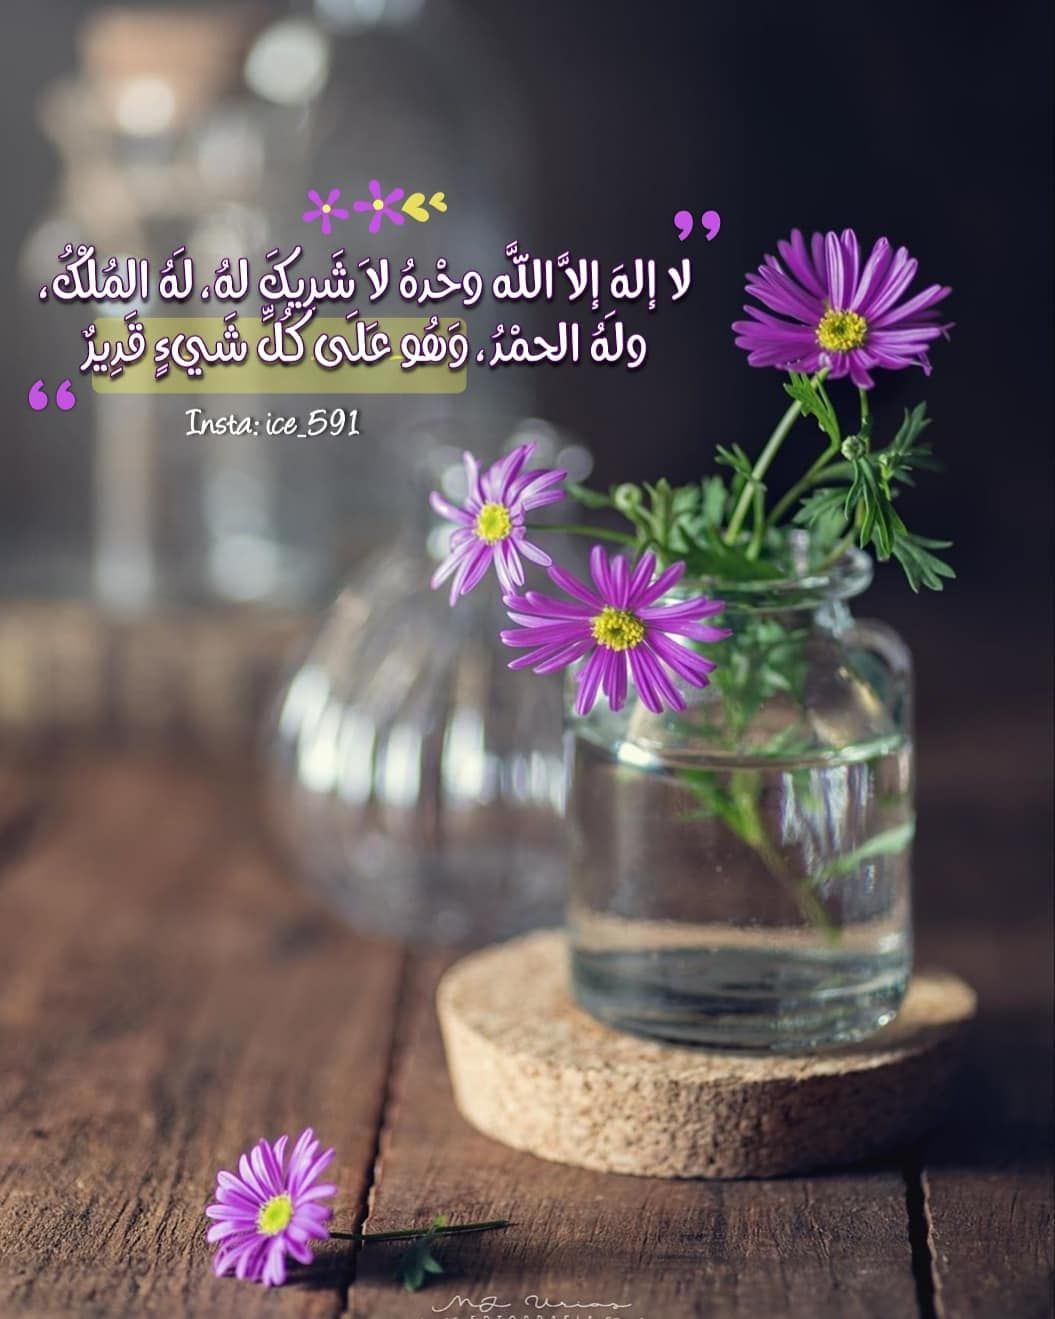 49 Likes 3 Comments S A M A H Ice 591 On Instagram لا إله إلا الل ه In 2020 Good Morning Images Flowers Good Morning Images Morning Images